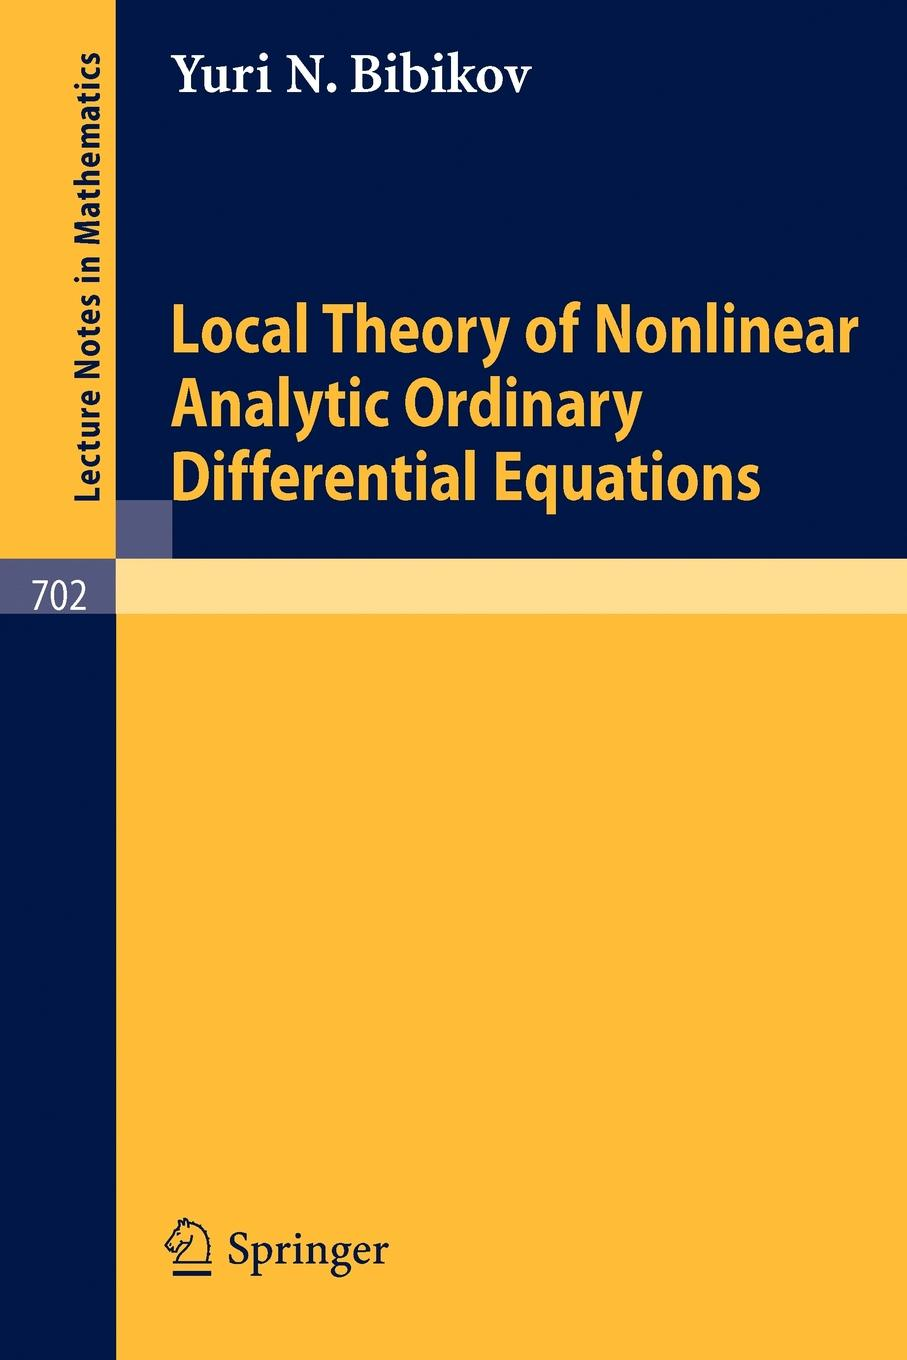 Y. N. Bibikov Local Theory of Nonlinear Analytic Ordinary Differential Equations qualitative theory of differential equations